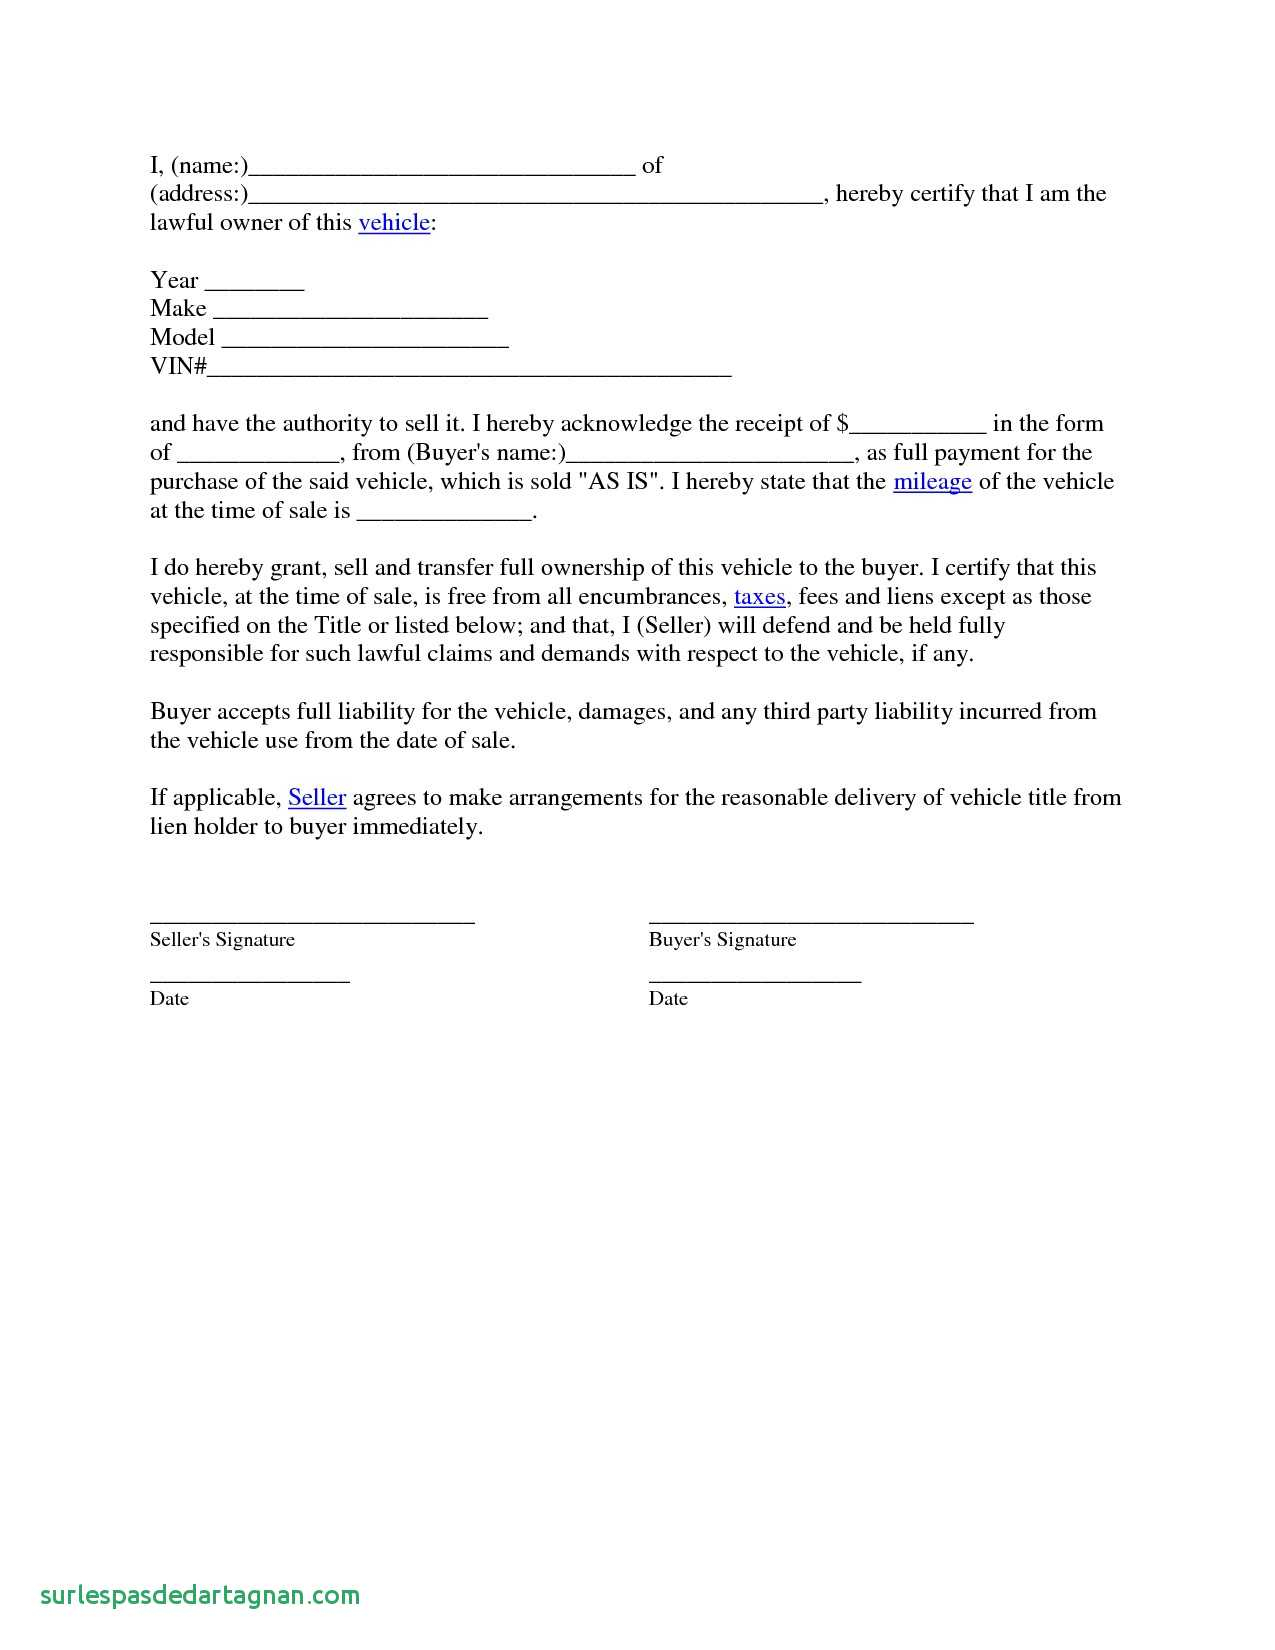 Repayment Agreement Letter Template - Vehicle Sales Agreement Beautiful toyota Proace Long Diesel 2 0d 120